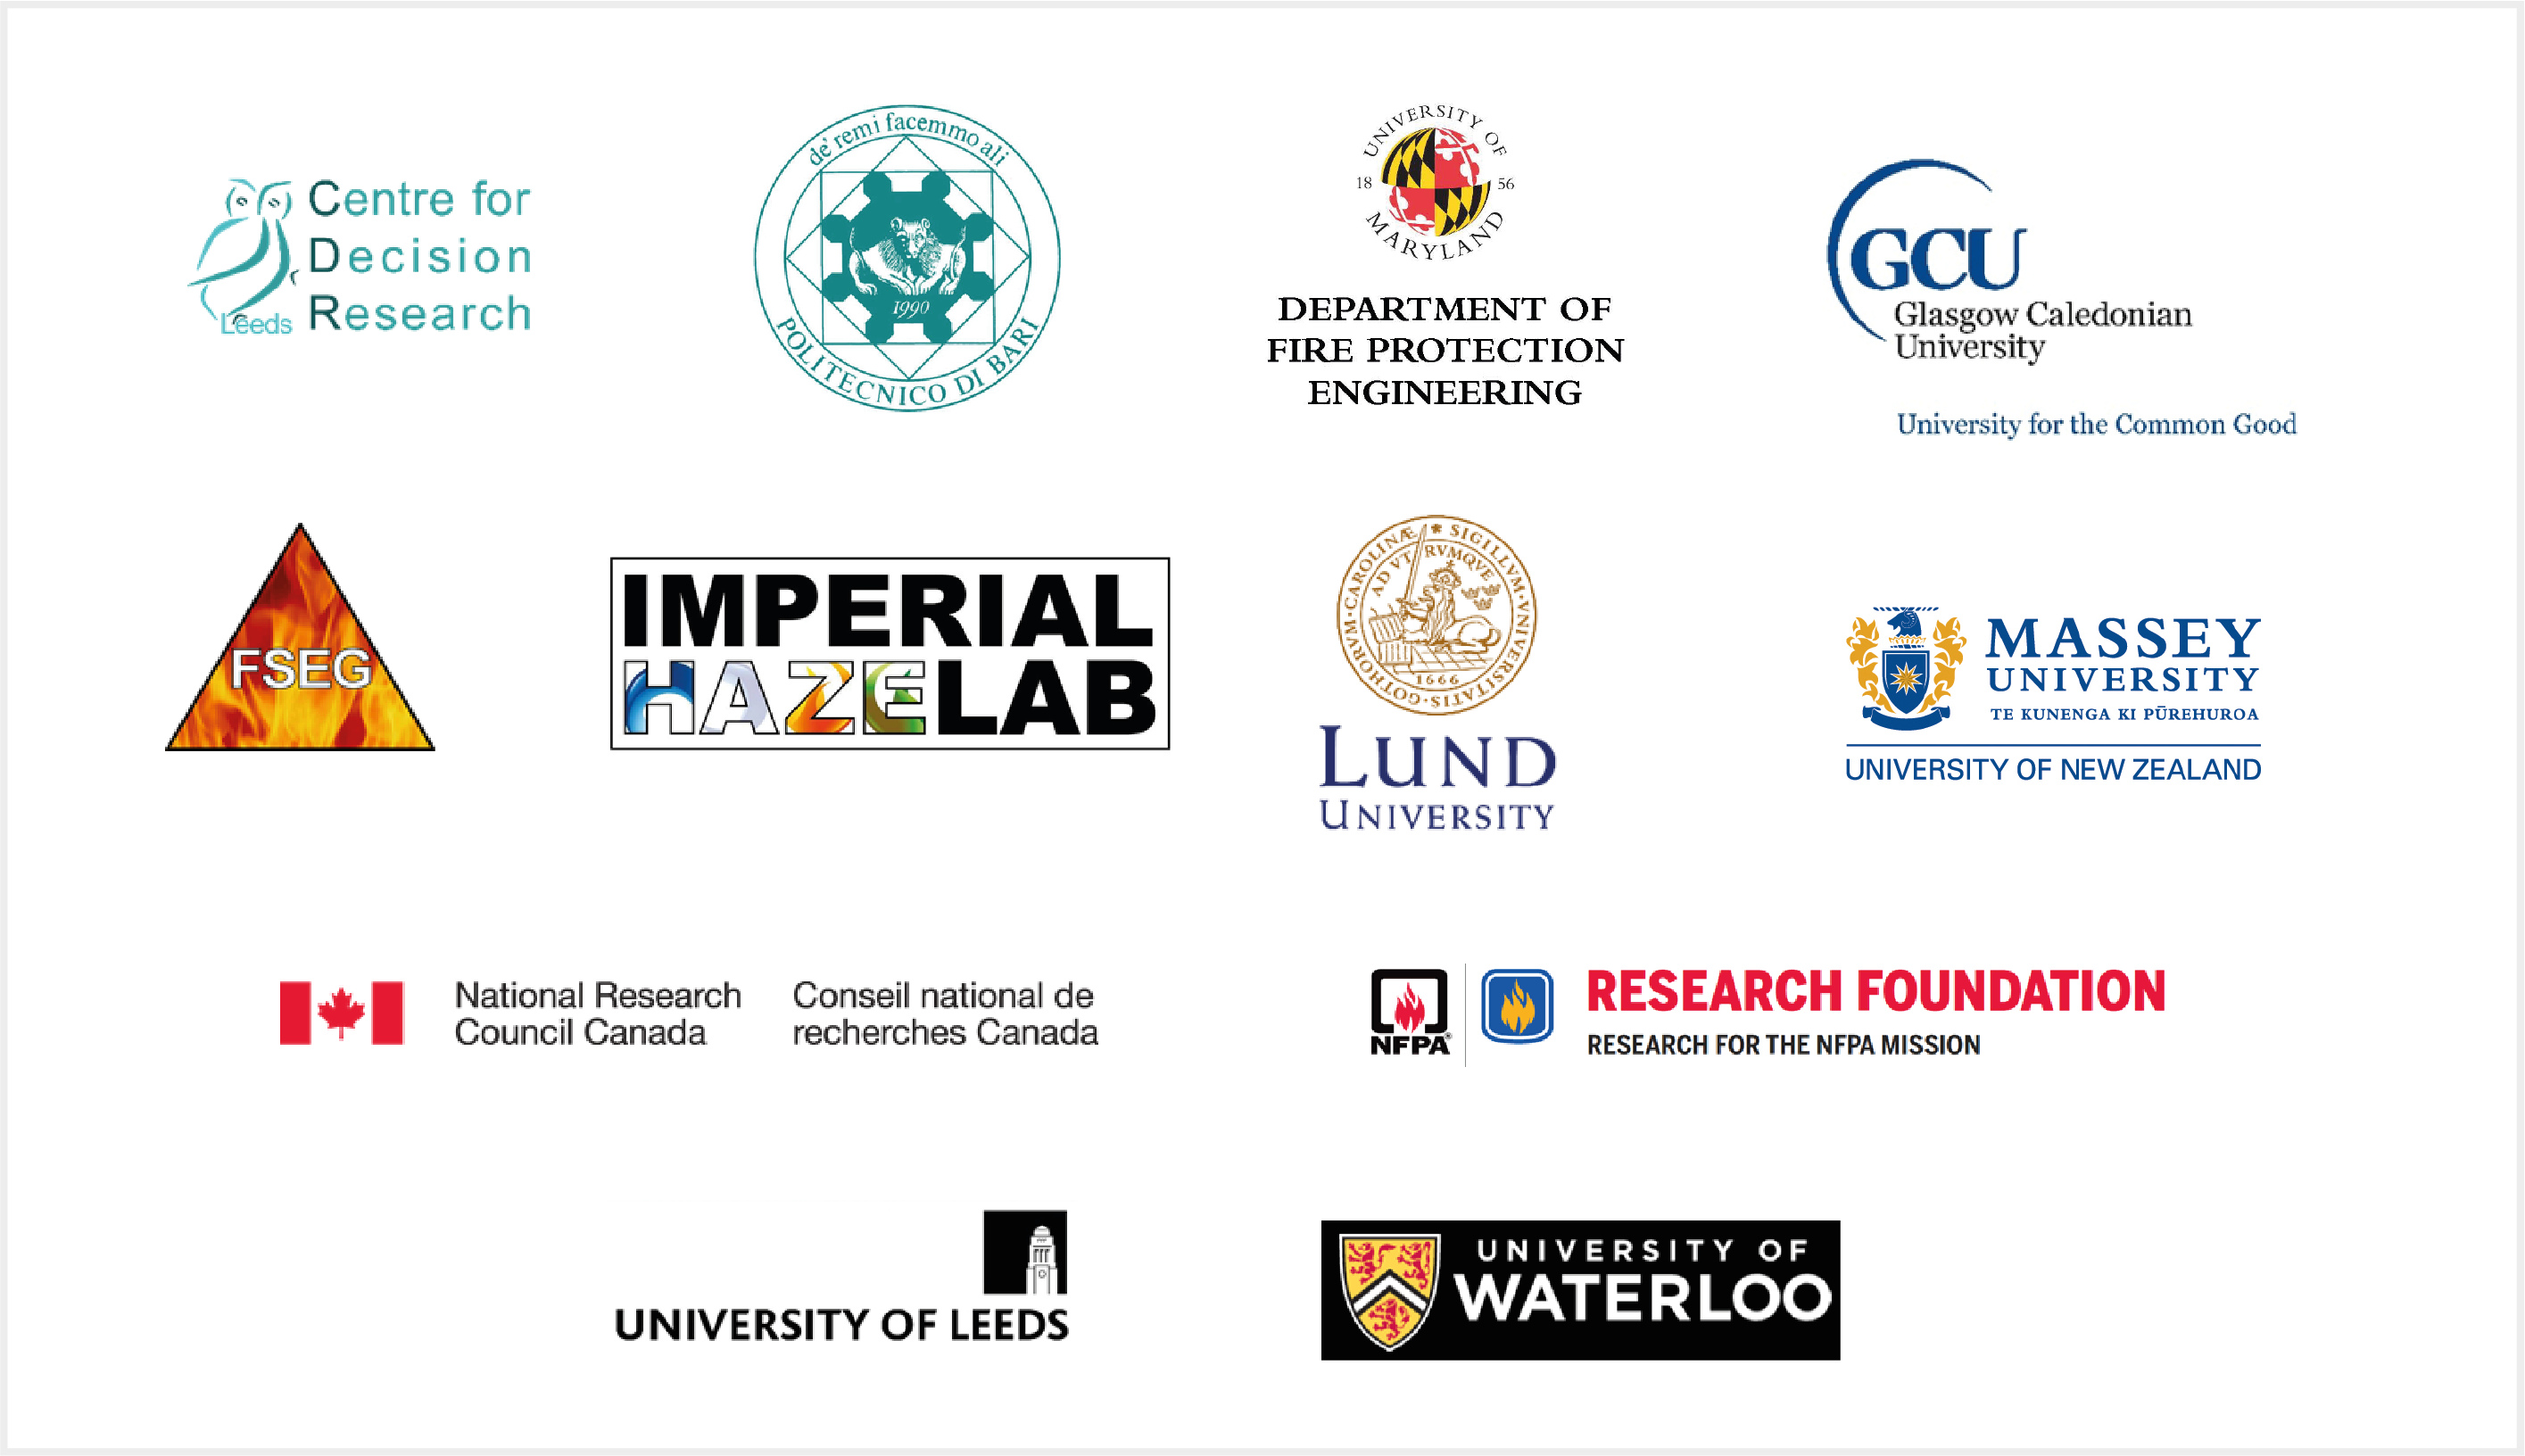 Movement Strategies are engaged with a number of organisations in research efforts